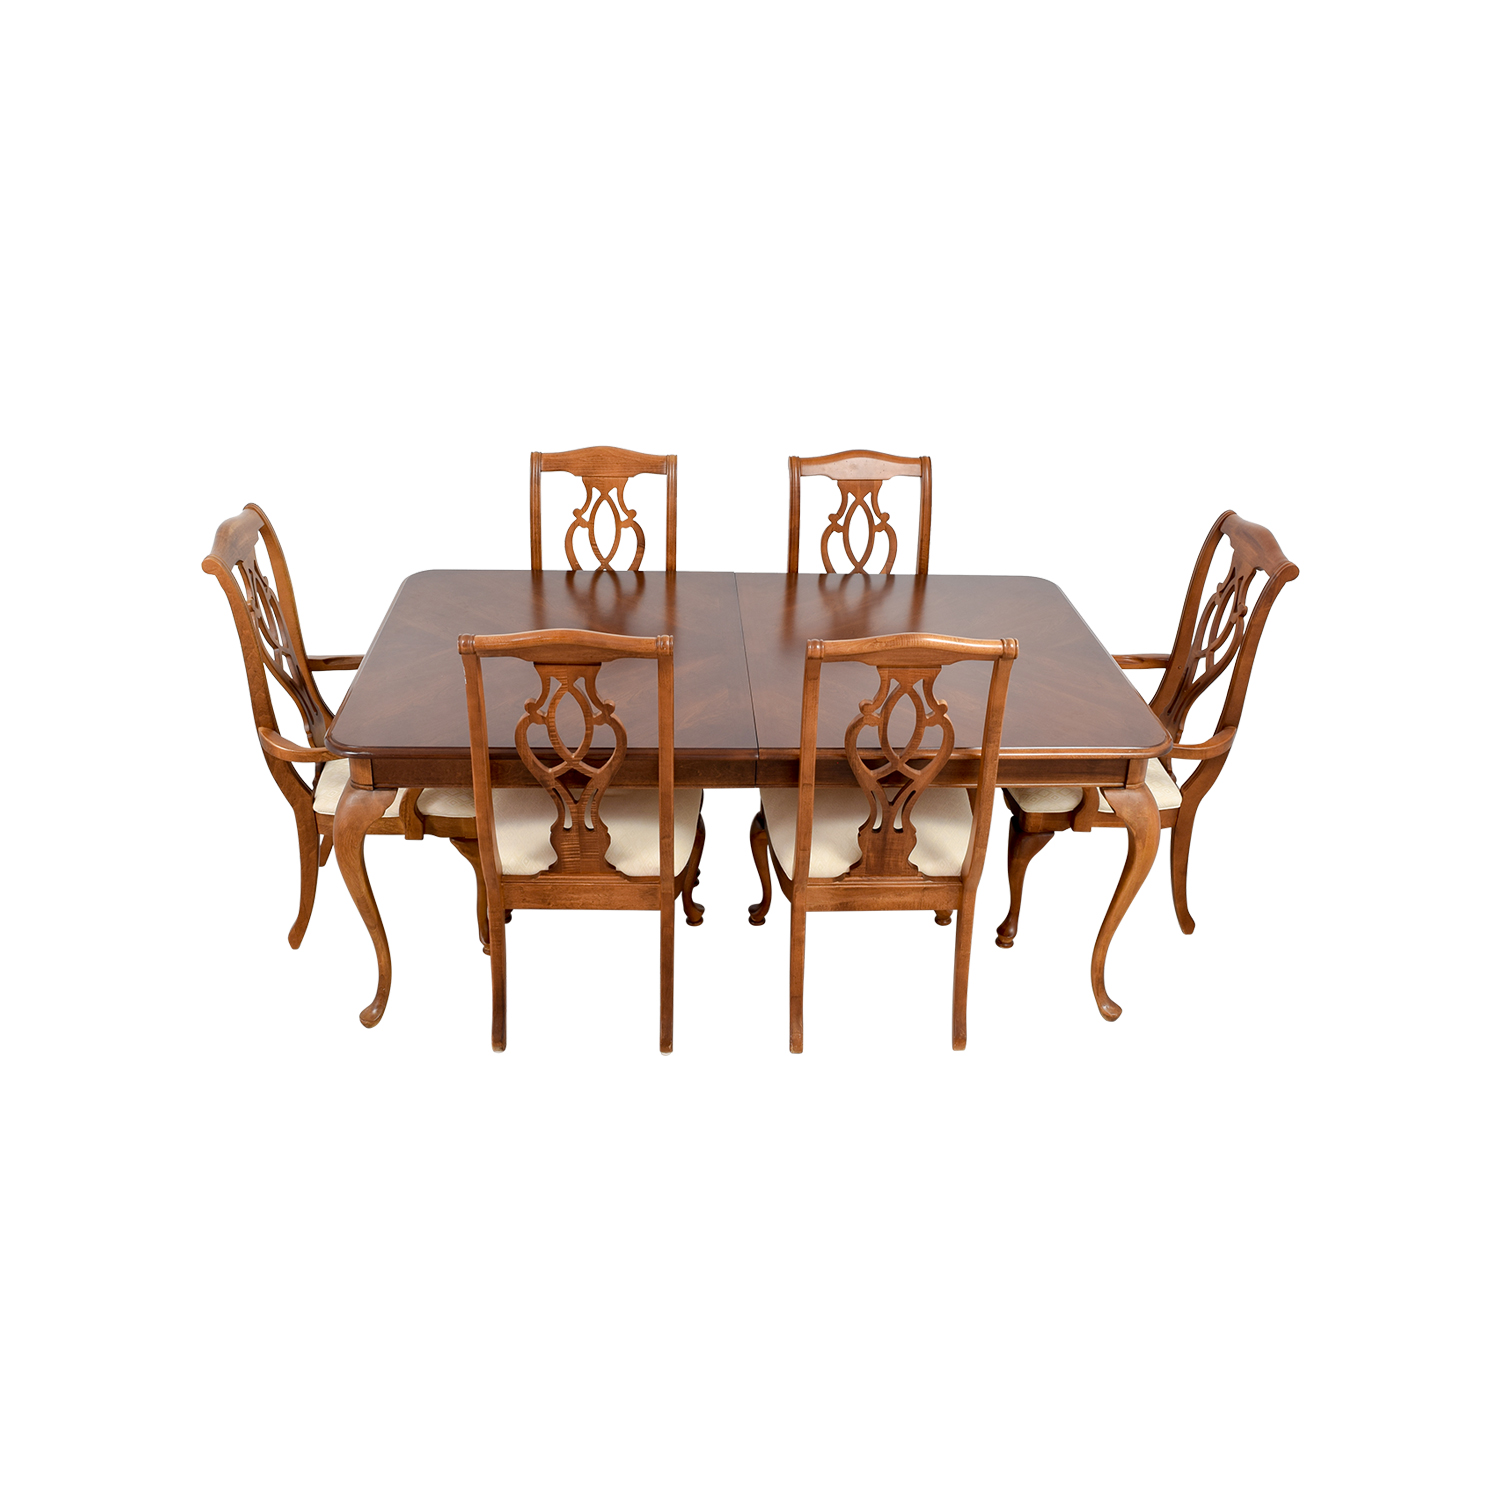 89 OFF American Drew American Drew Dining Table Set Tables